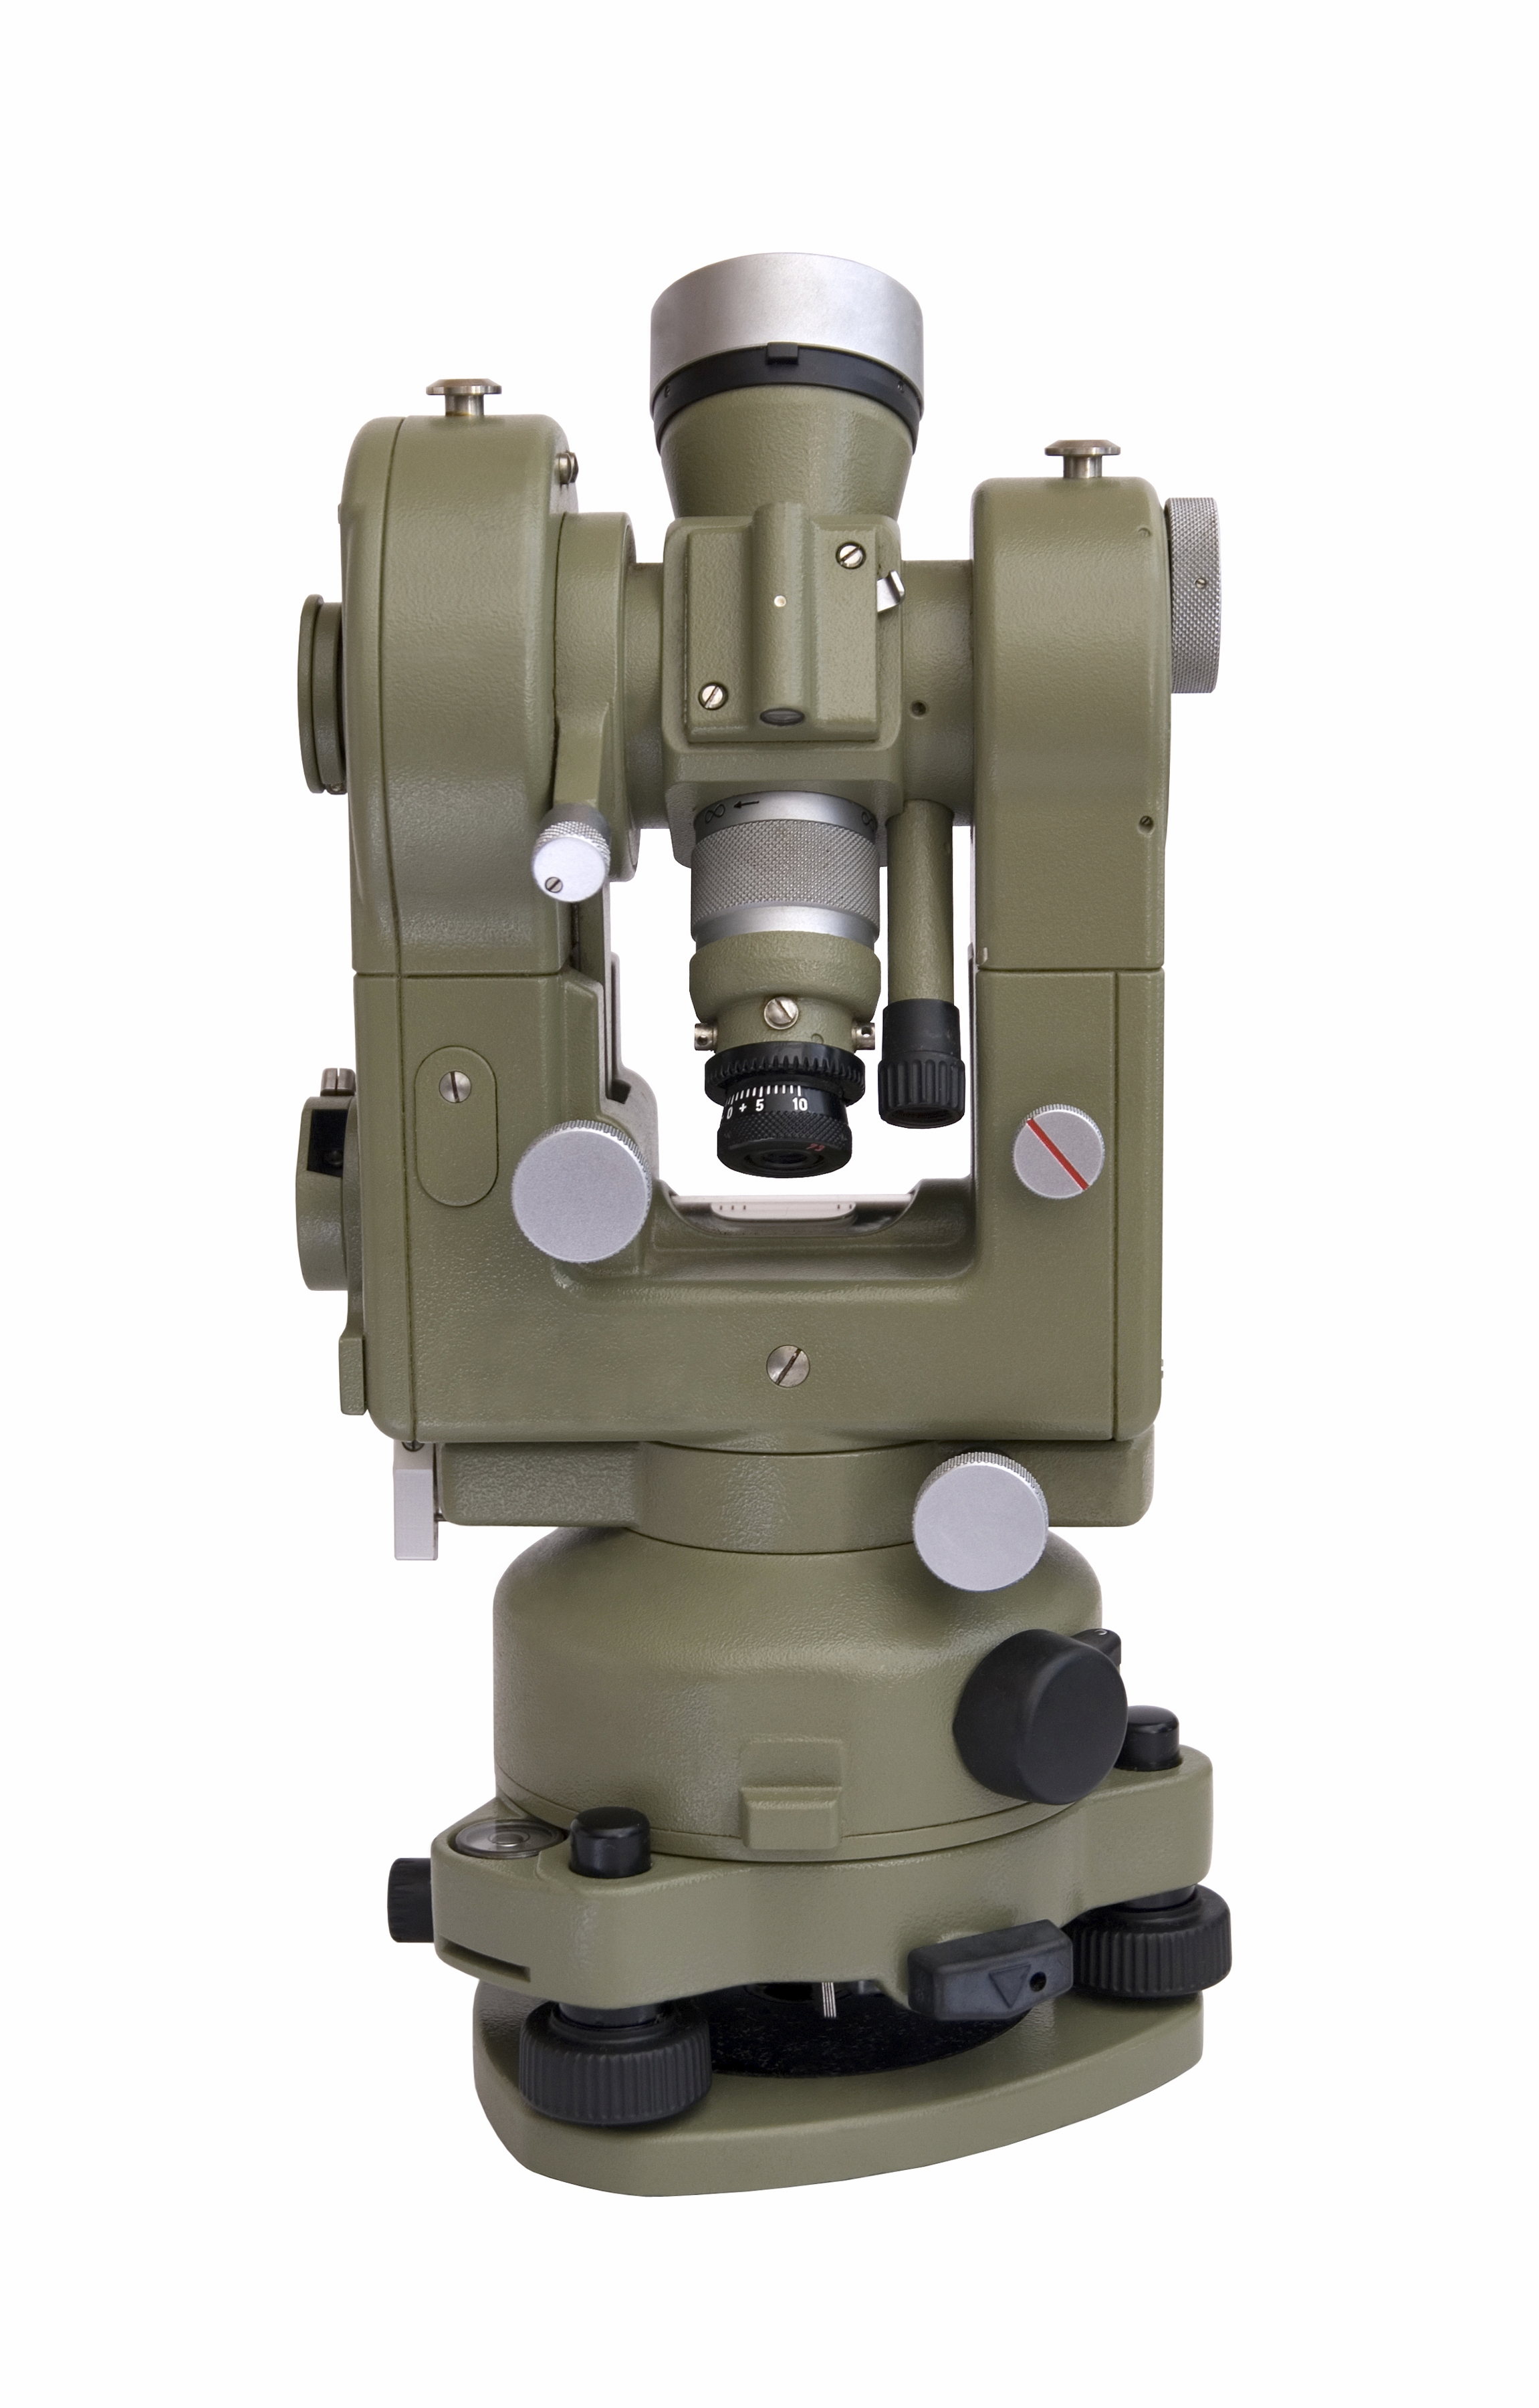 Image of a theodolite machine